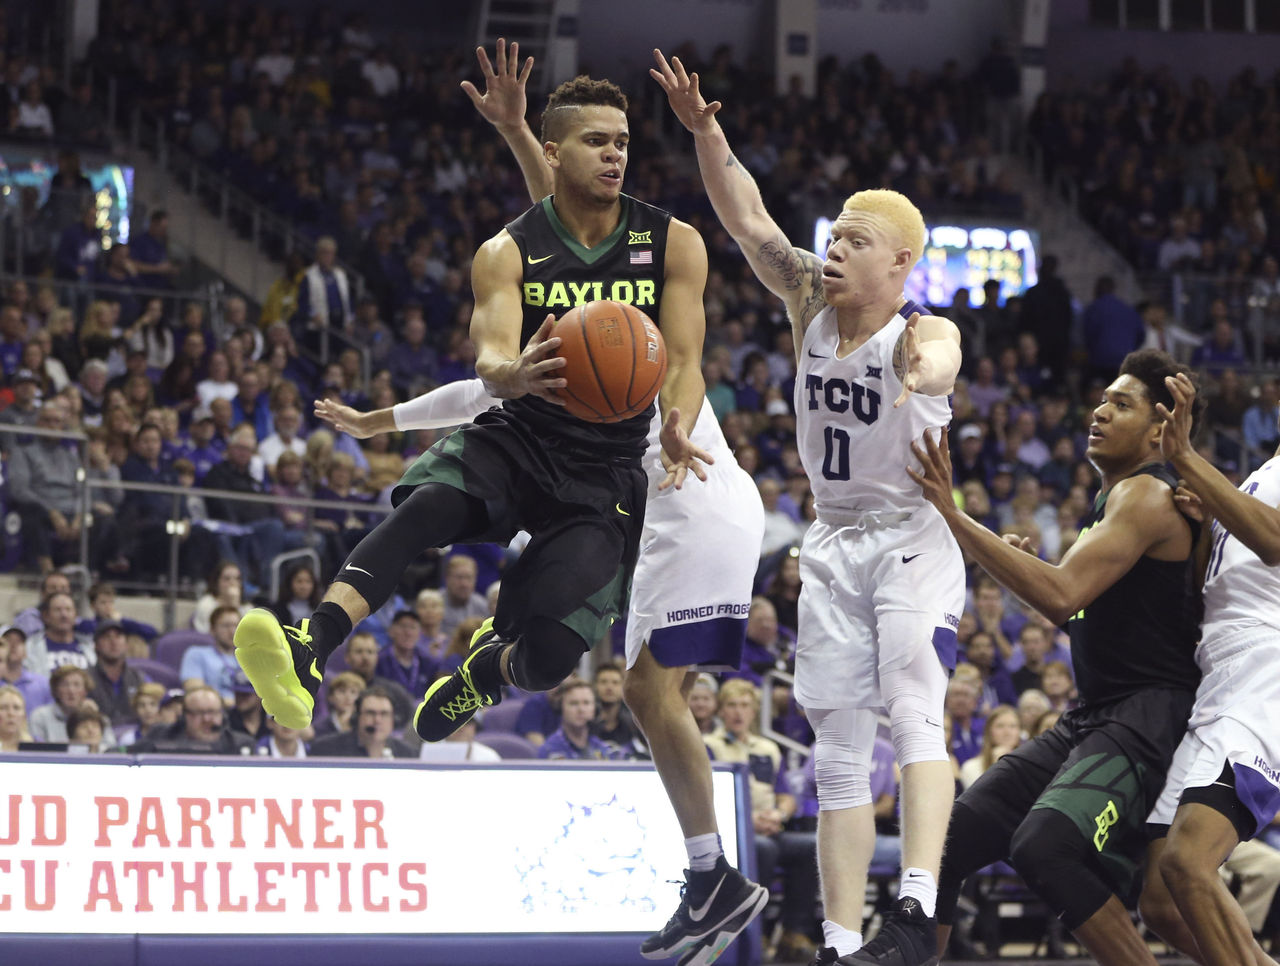 Cropped 2017 01 22t015421z 1097273815 nocid rtrmadp 3 ncaa basketball baylor at texas christian